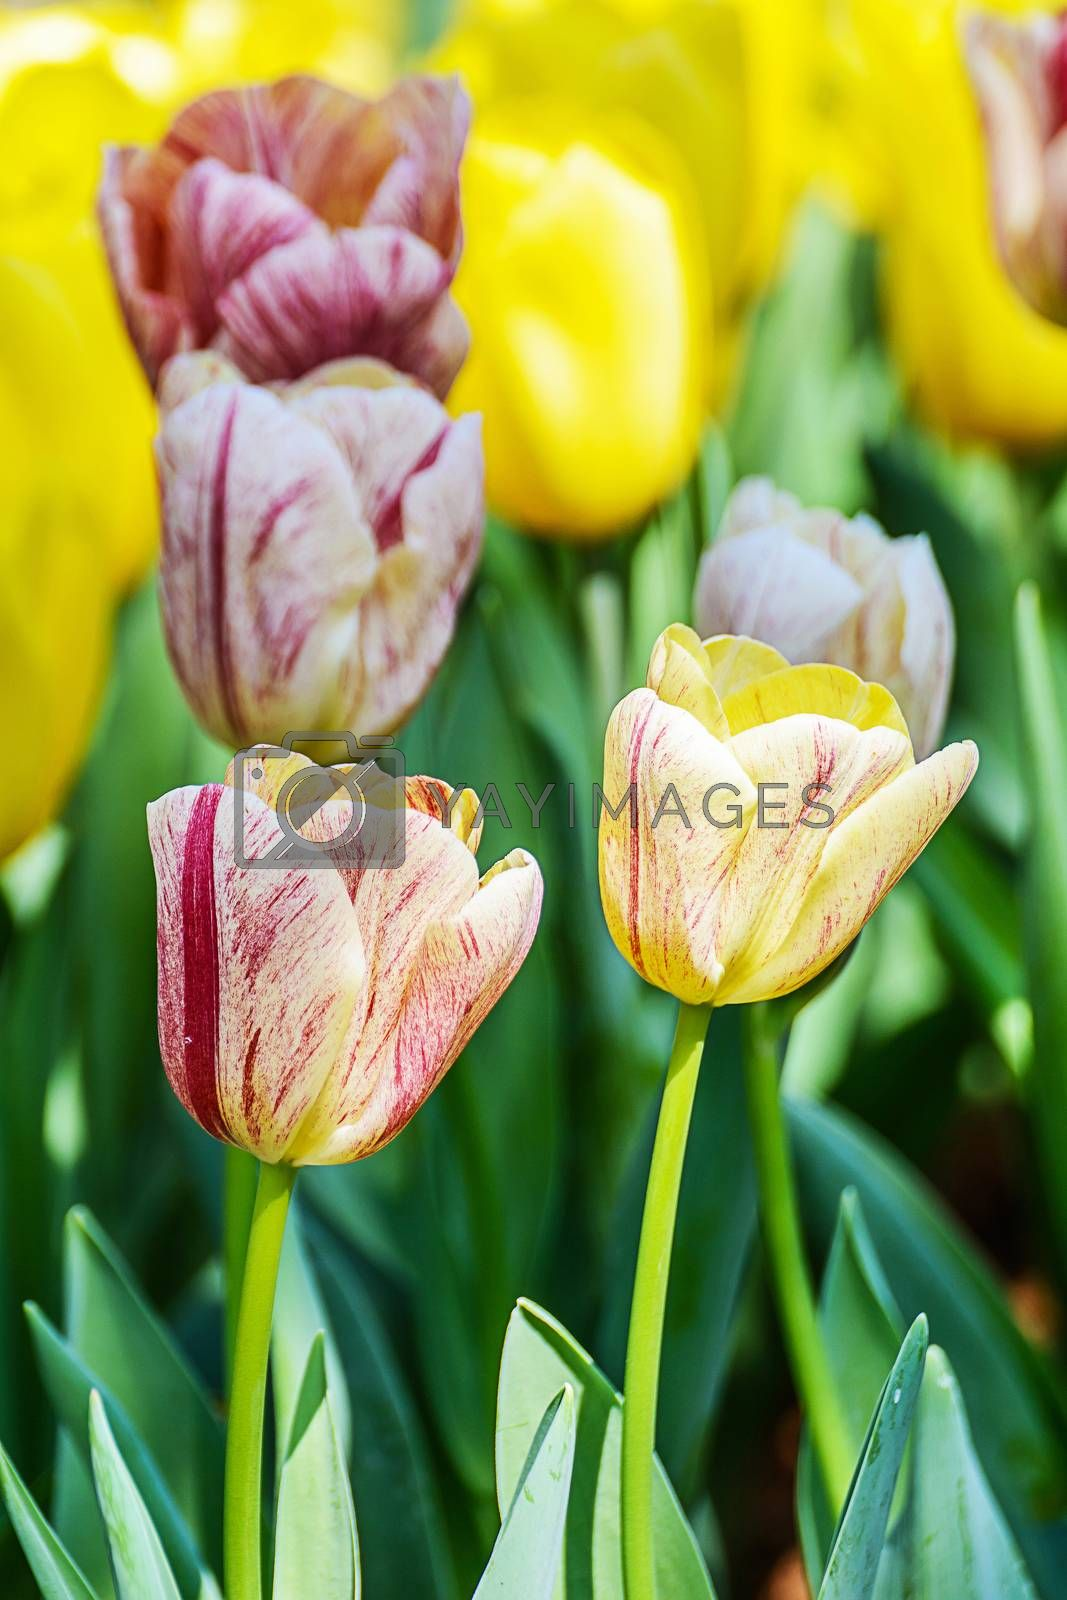 Royalty free image of Tulips by NuwatPhoto